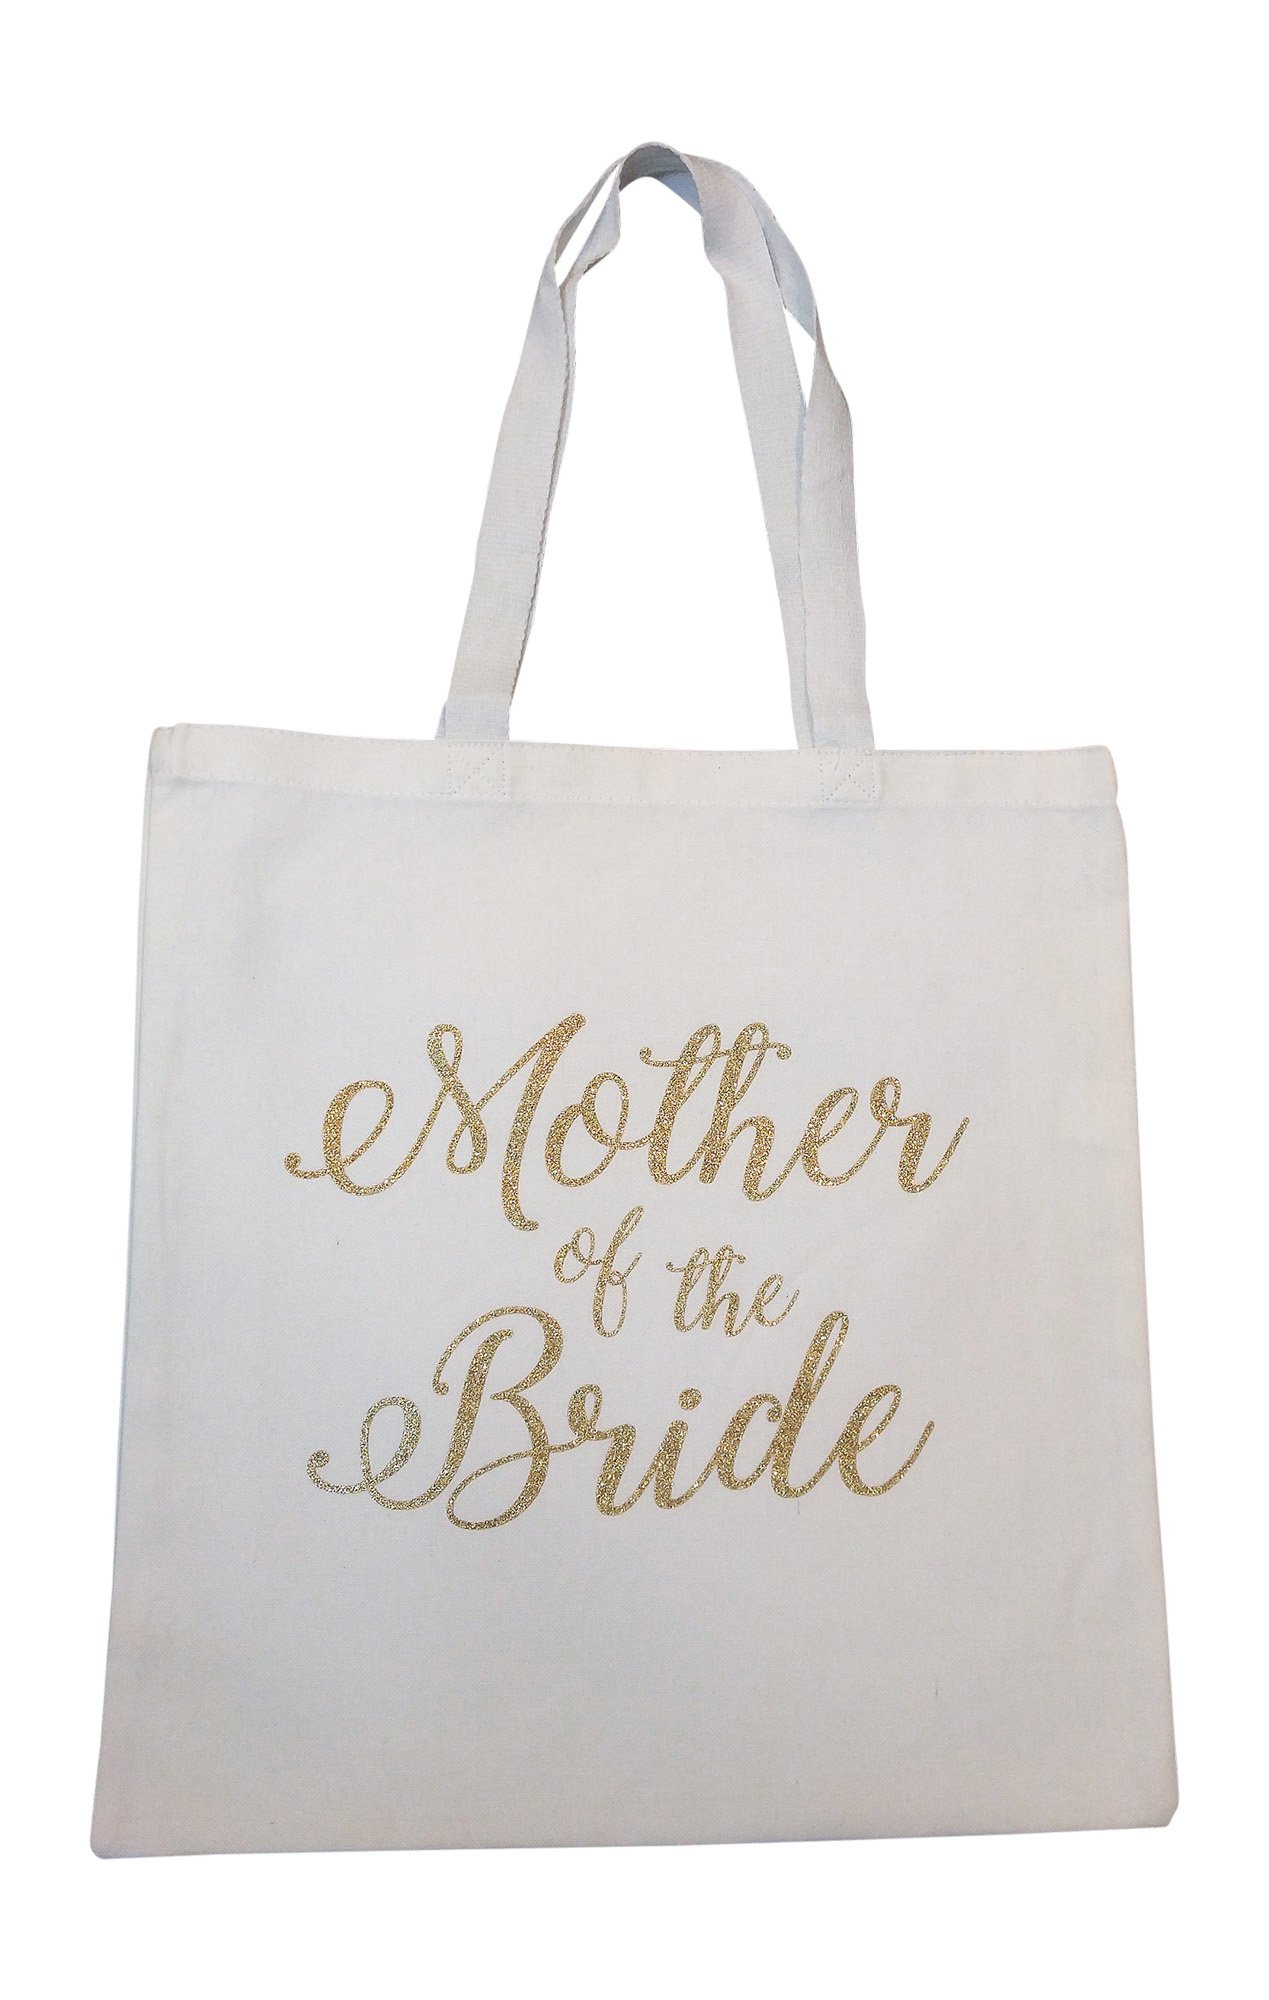 The Spoiled Office Wedding Party Bridal Tote Bag with Gold Lettering - Heavyweight, Large Canvas 15'' x 16'' (Mother of the Bride in White)